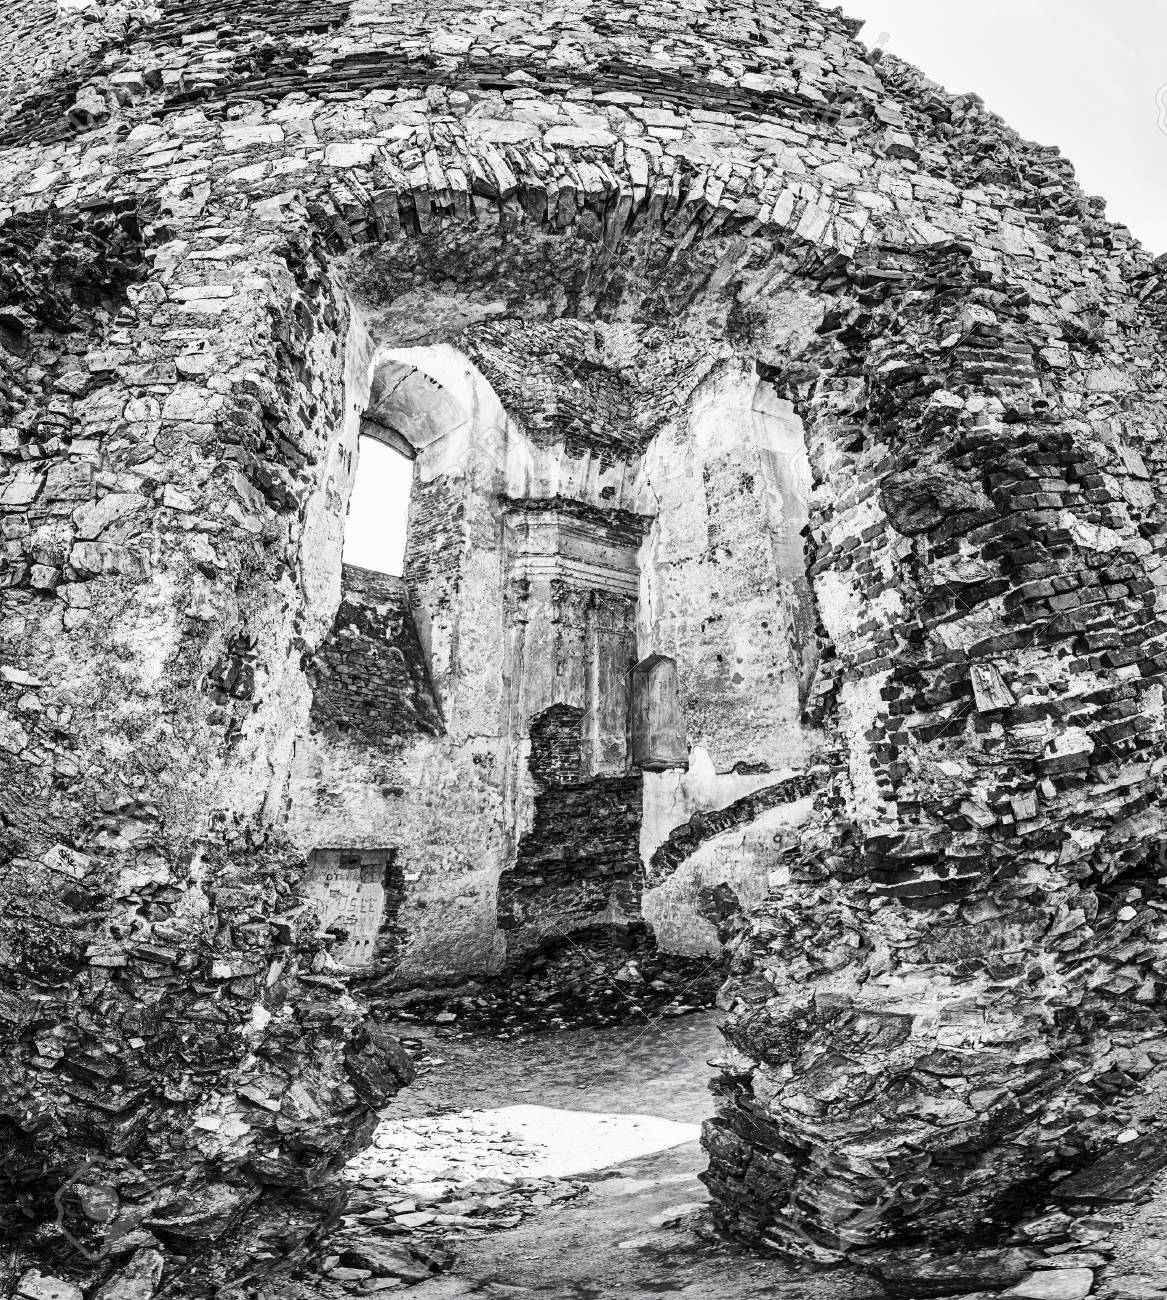 Black and white photo ruins of the castle gymes in slovak republic travel destination detailed scene black